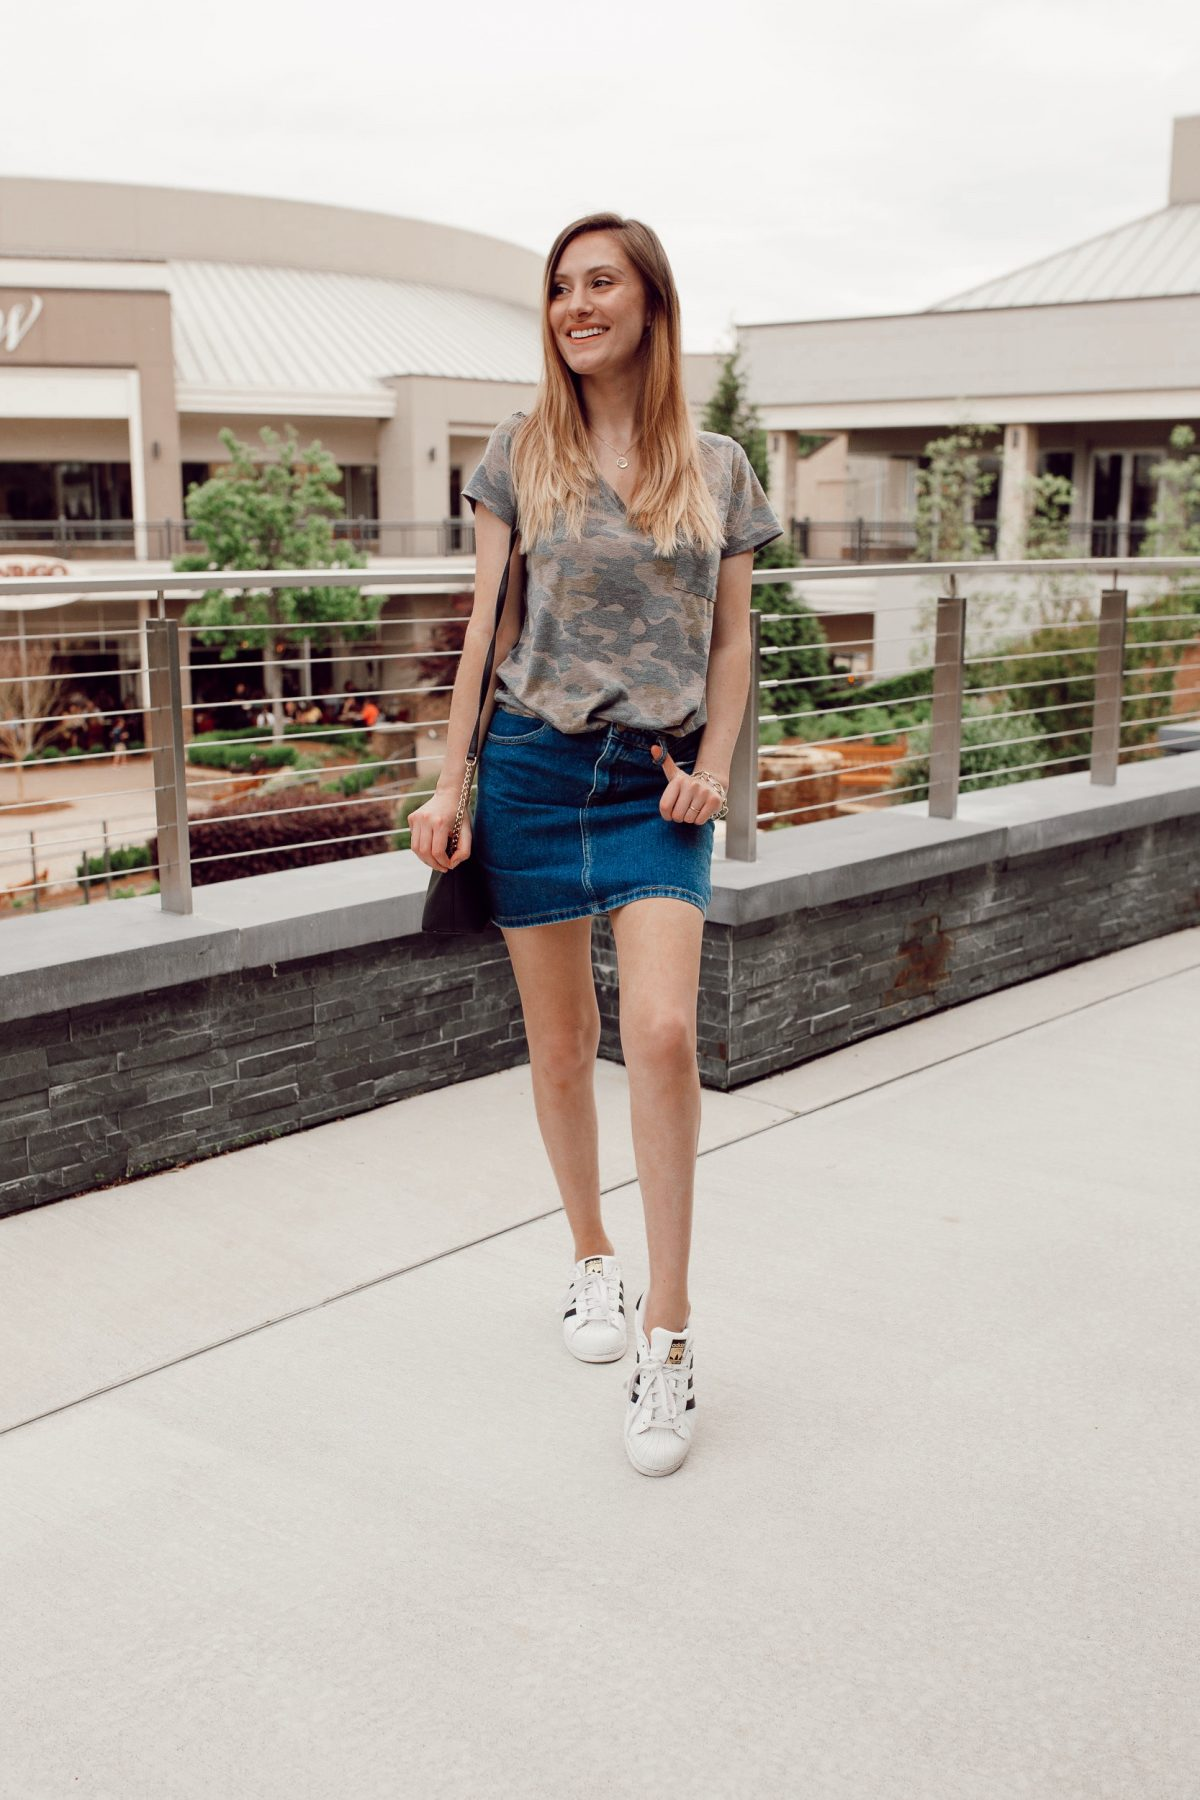 Sporty outfit inspiration with fashion blogger Jessica Linn wearing a Forever21 Denim skirt, Adidas shoes, and a camouflage t-shirt.